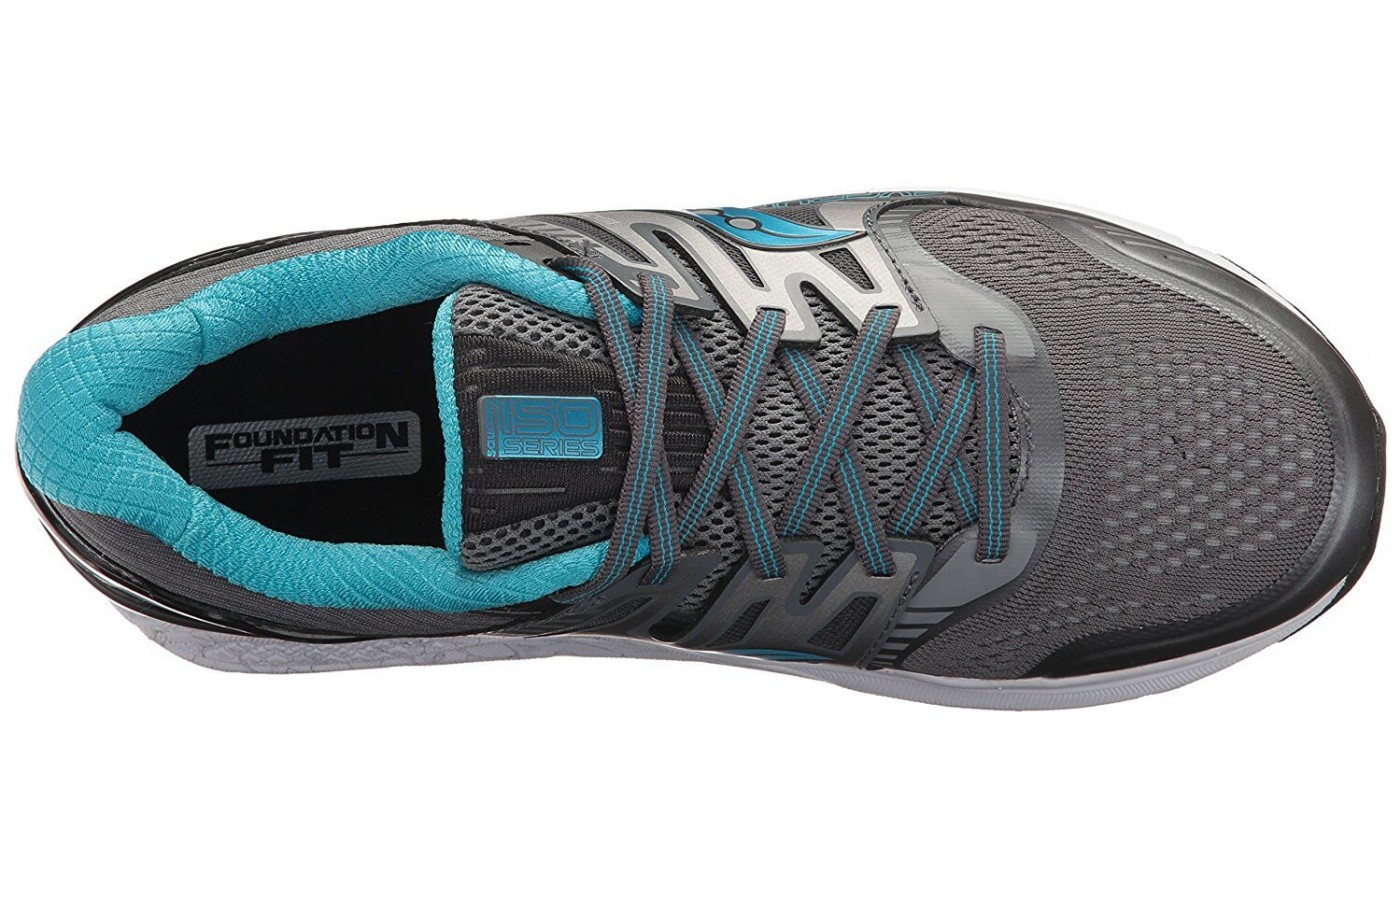 The Saucony Redeemer ISO 2 has a new engineered mesh upper